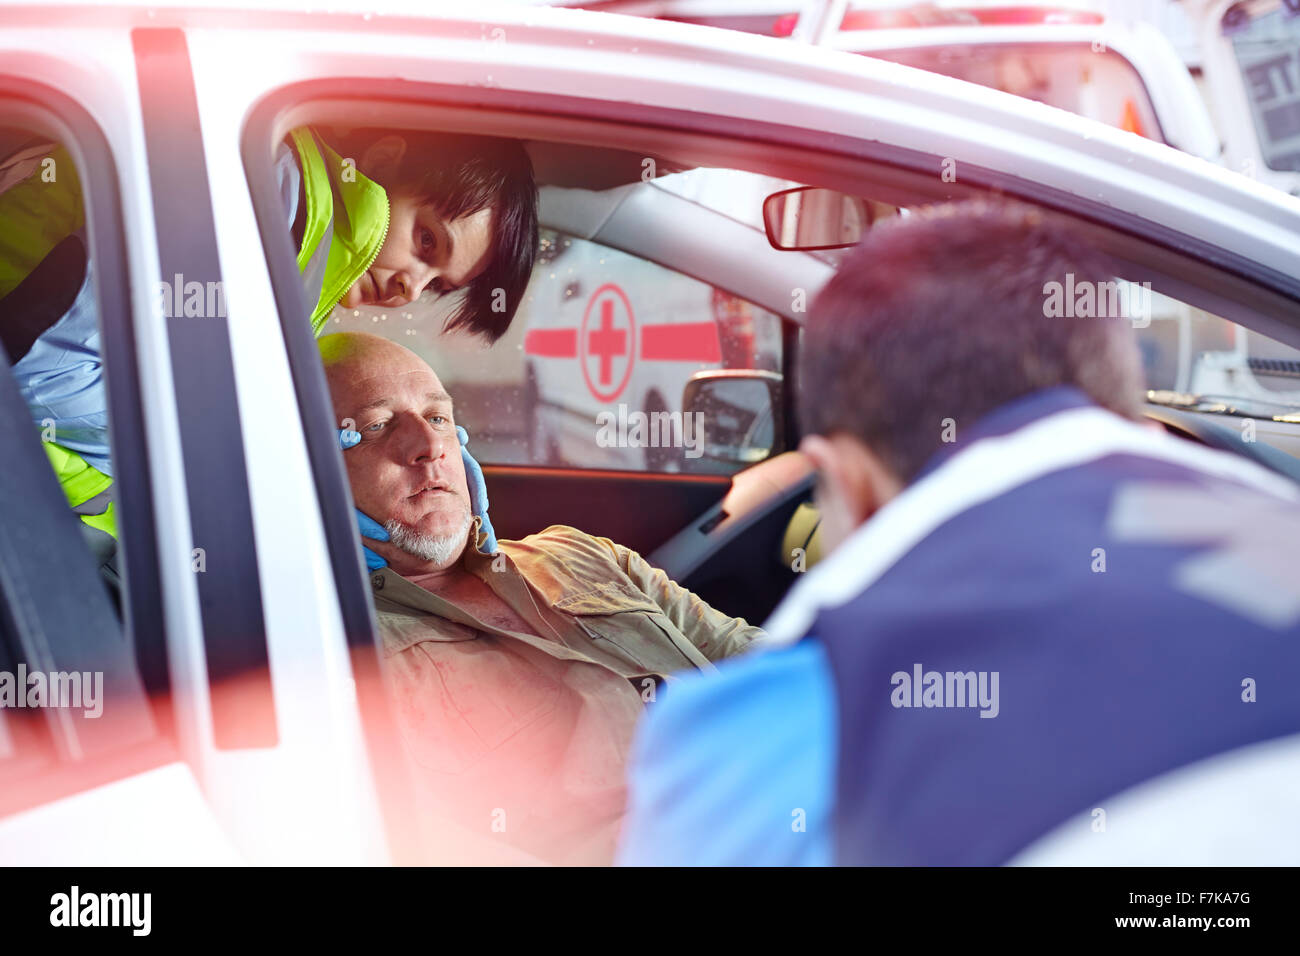 Rescue workers tending to car accident victim in car - Stock Image